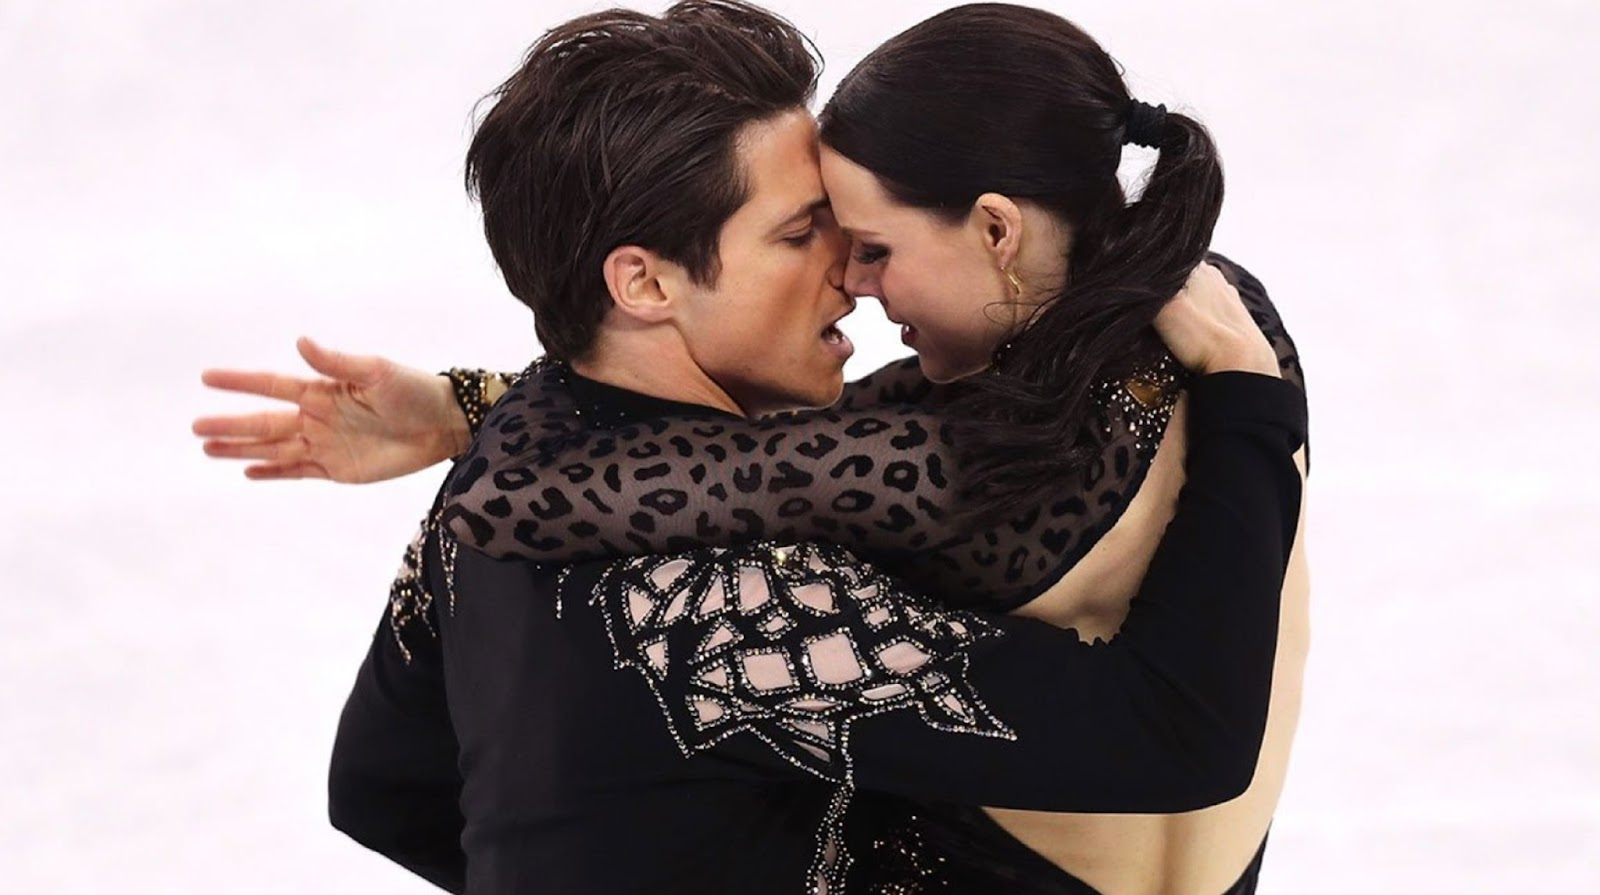 TESSA VIRTUE, SCOTT MOIR 3